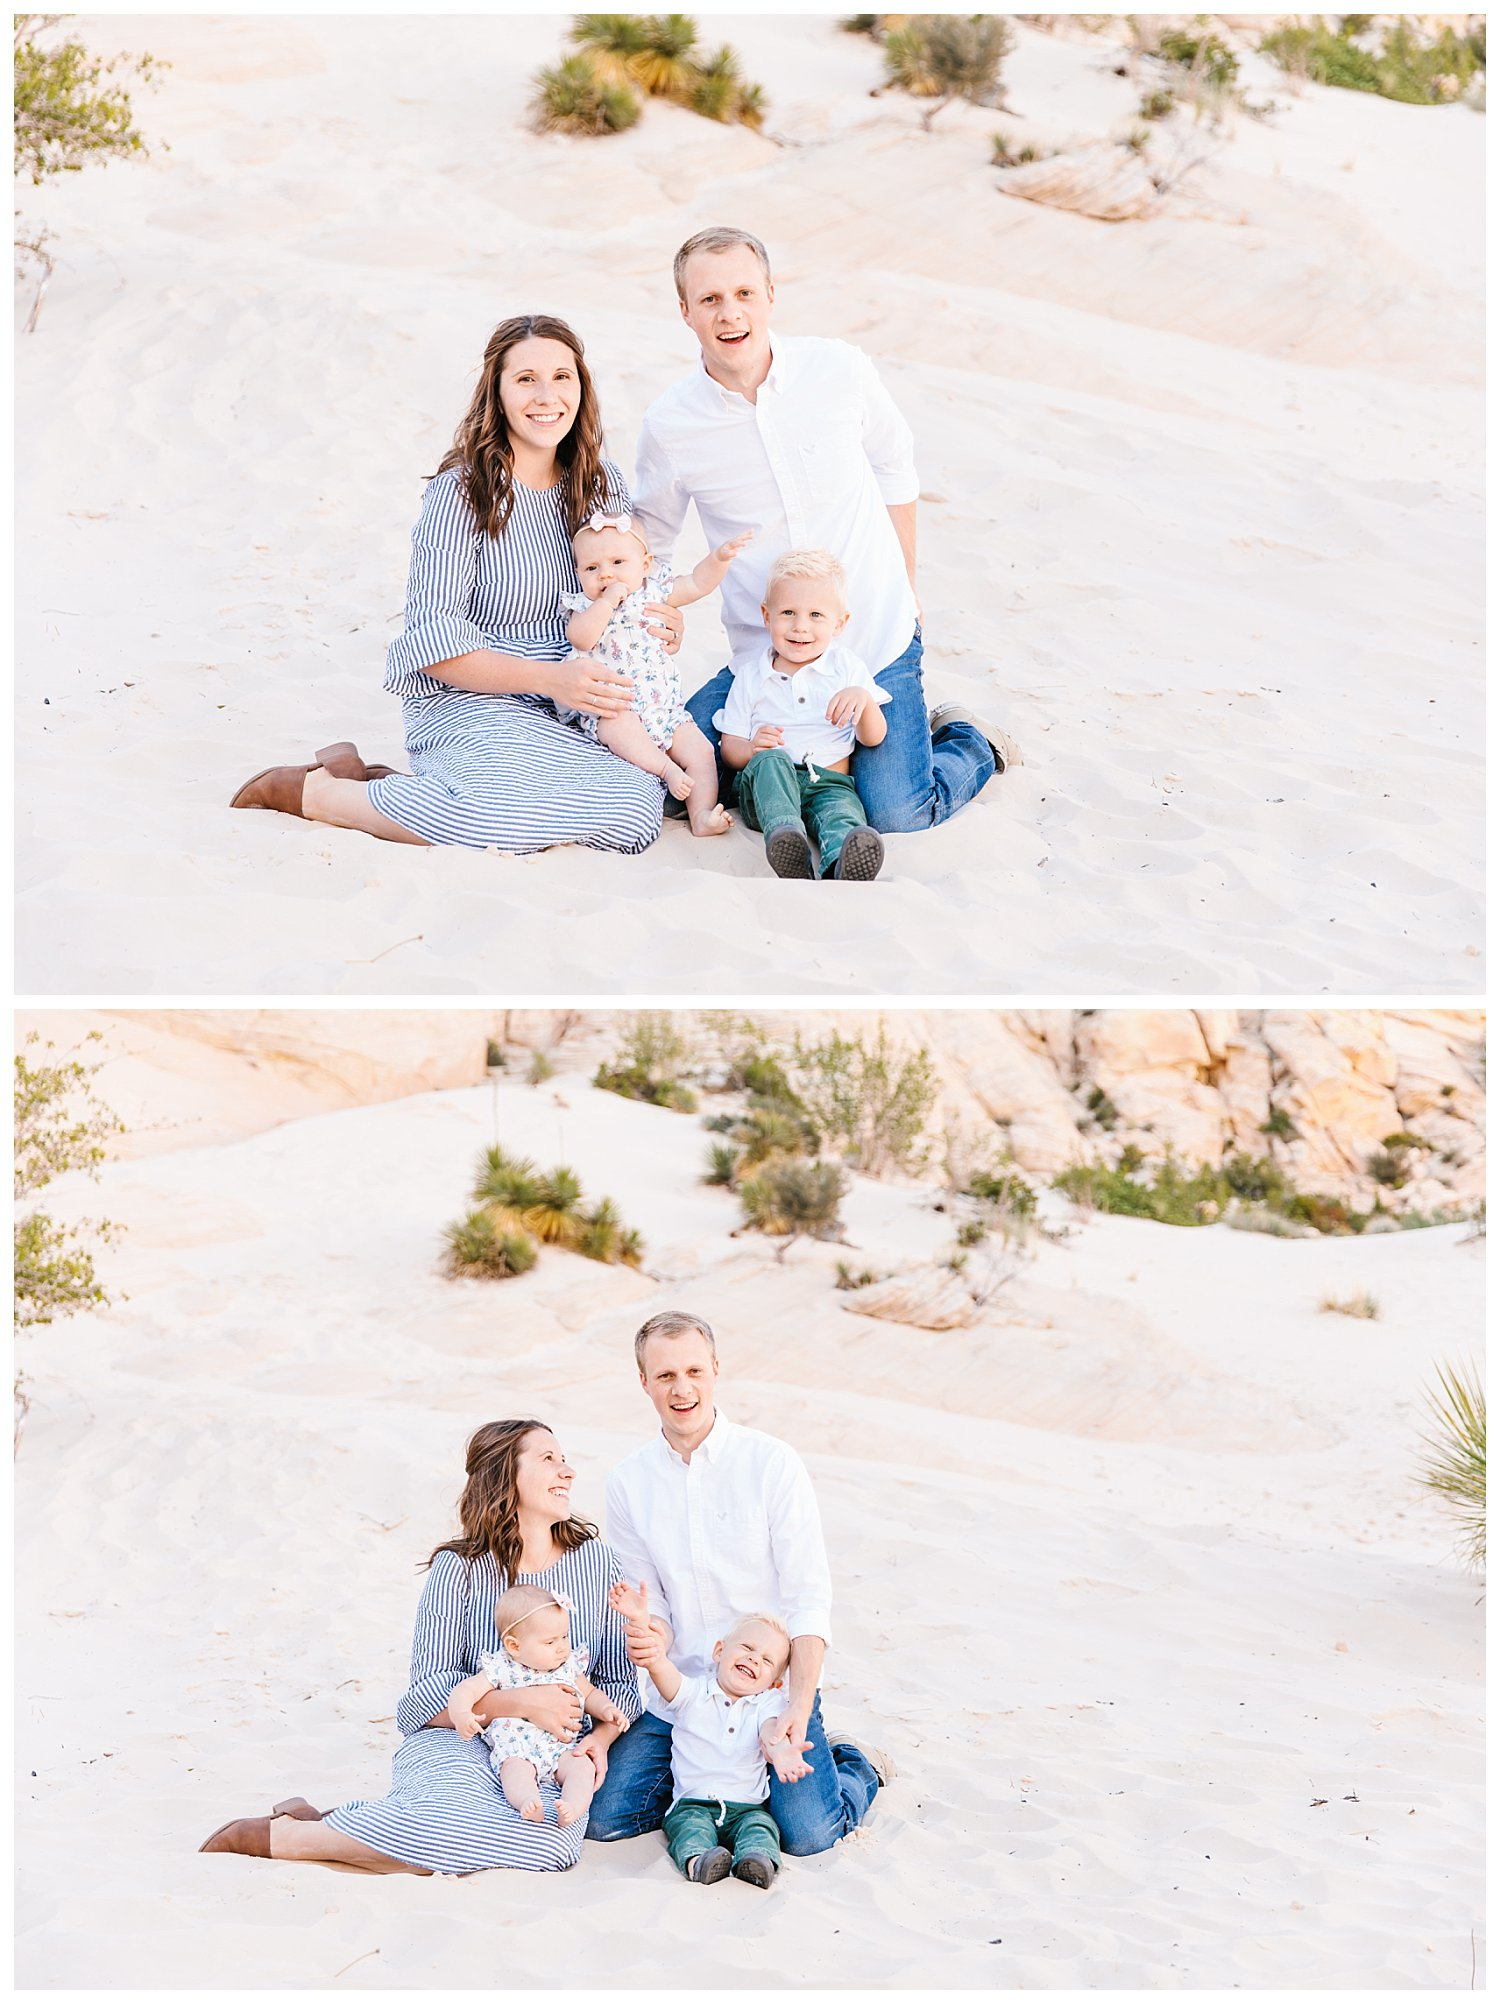 Family Session in Snow Canyon Utah | Rachel Lindsey Photography | Utah Family Photographer 1